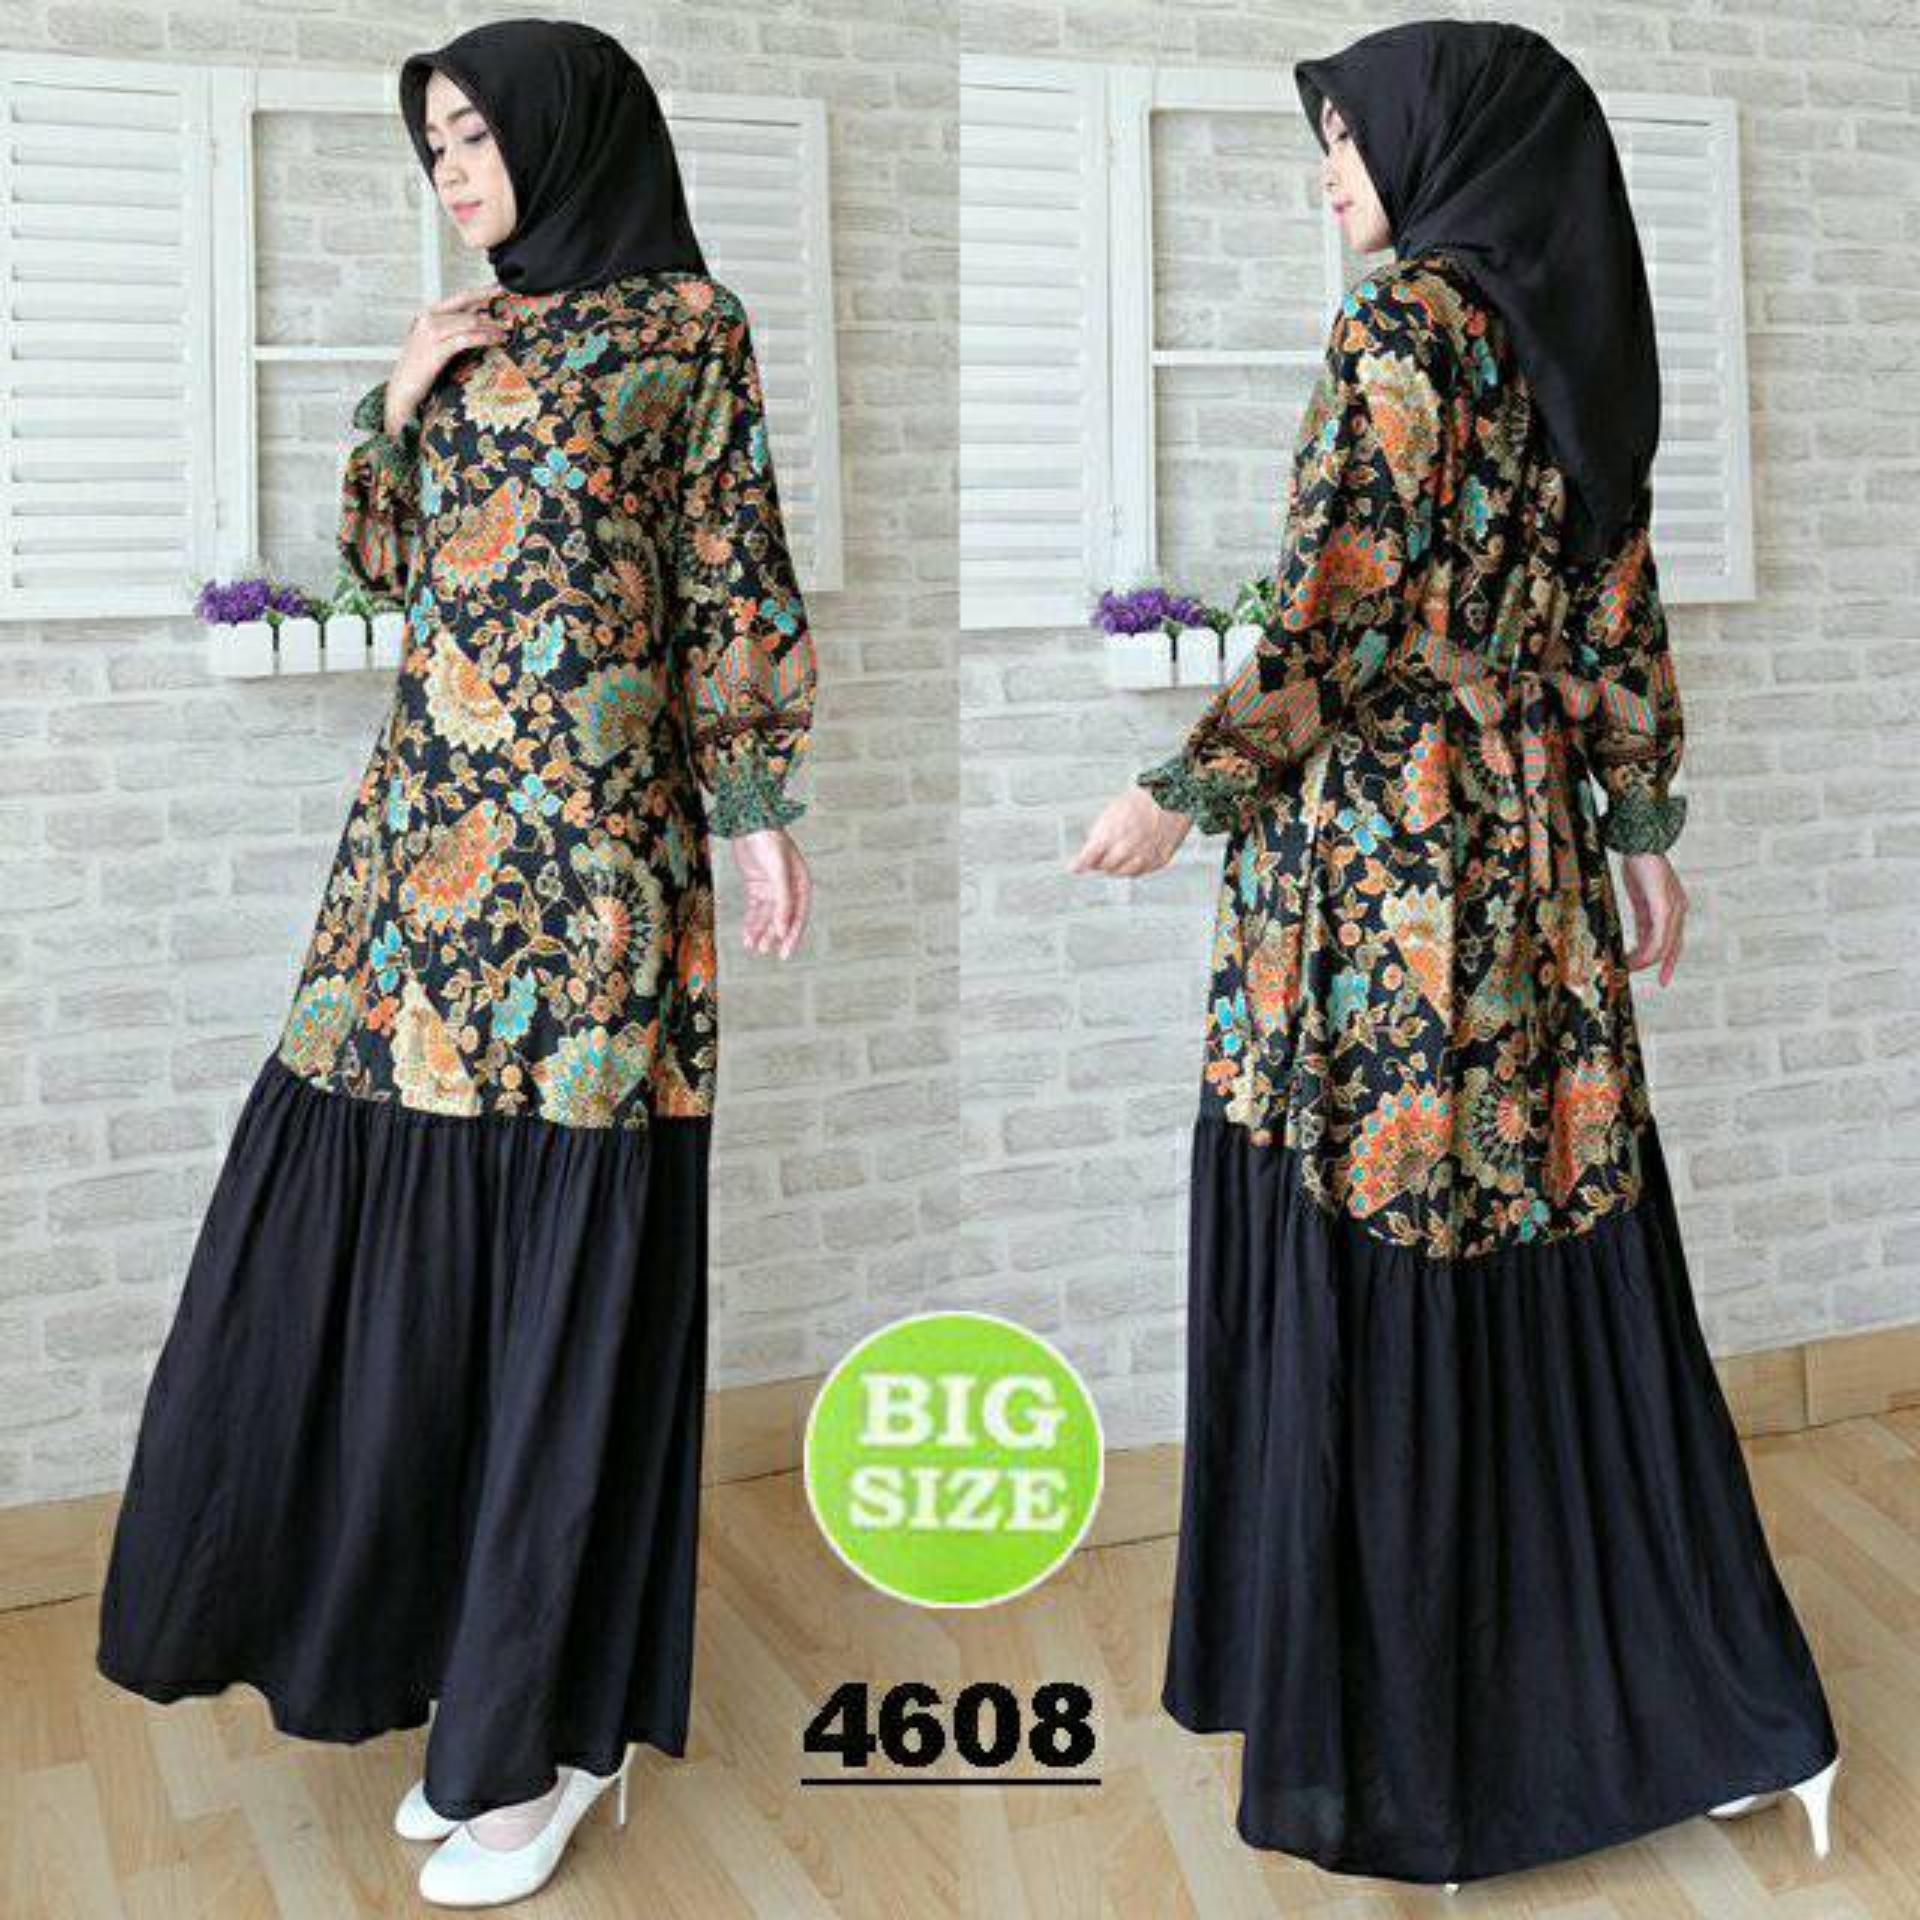 FASHION FLOWER-DRESS MAXI | MUSLIM WEAR | DRESS WANITA | BUSANA MUSLIM | FASHION WANITA | MUSLIM WEAR | PAKAIAN WANITA | BIG SIZE | DRESS MAXI WANITA BATIK NURIDA FIT XXL-BLACK (LD 110CM,PJG 138CM)